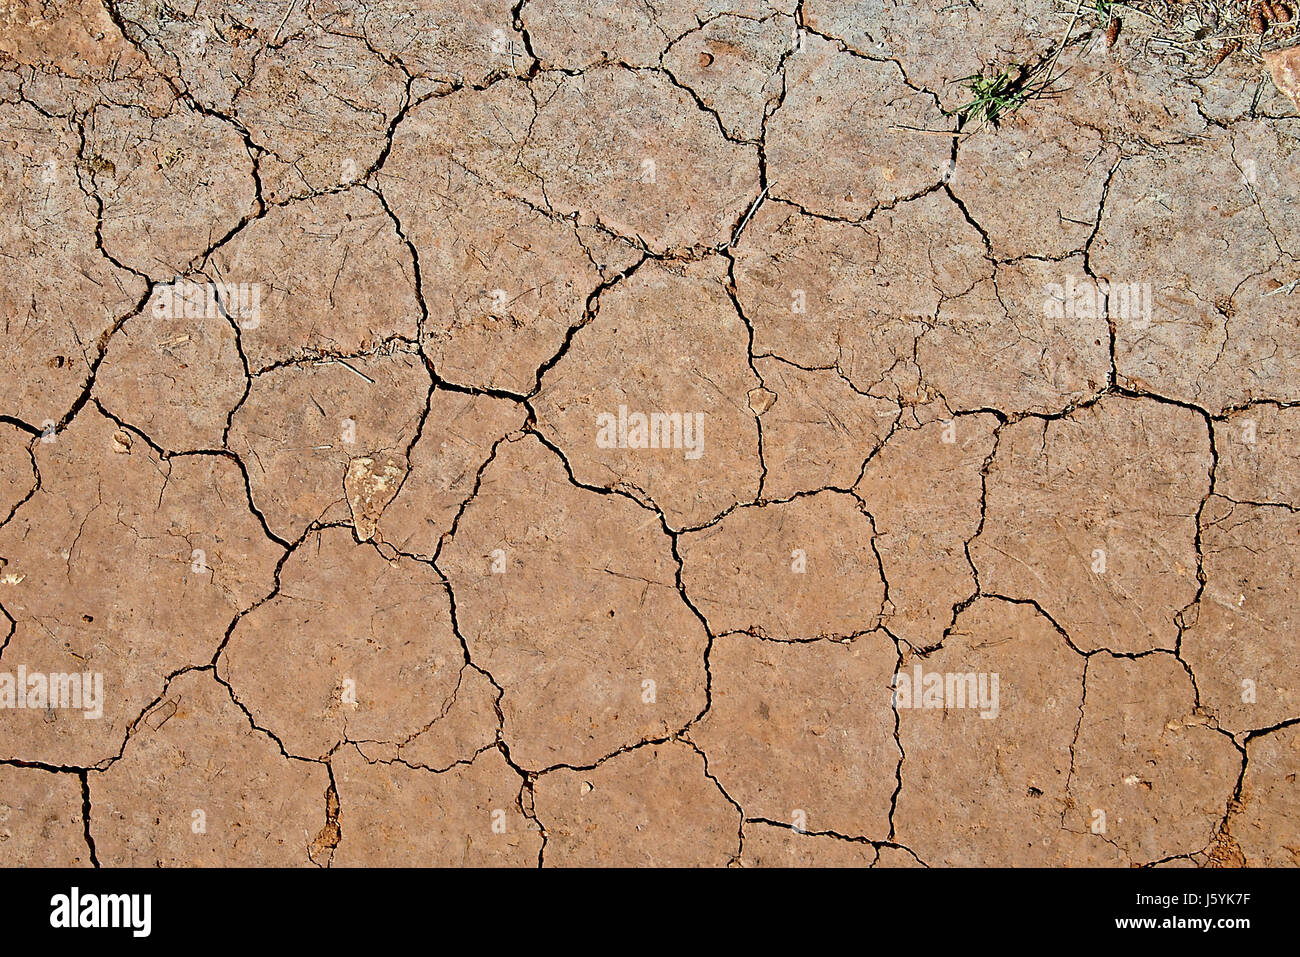 climate change drought catastrophe globe planet earth world climate - Stock Image